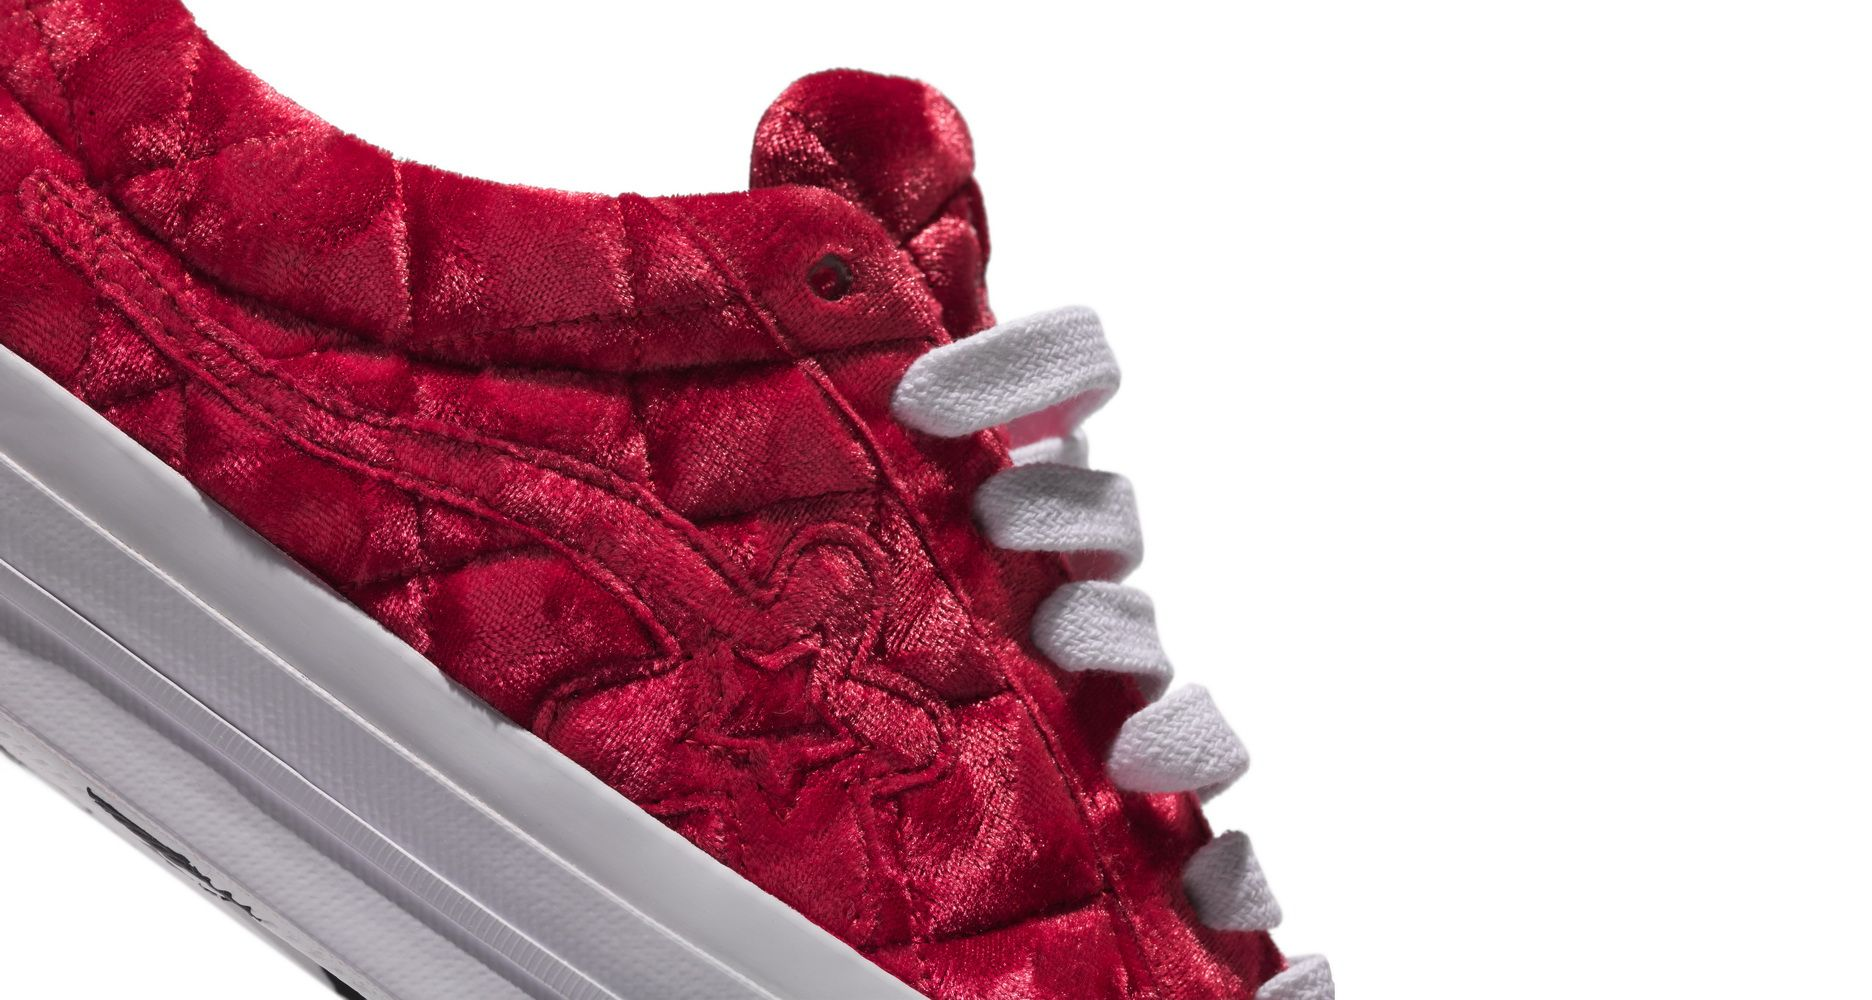 SU19_Golf_Le_Fleur_Quilted_Red_Detail2_resize